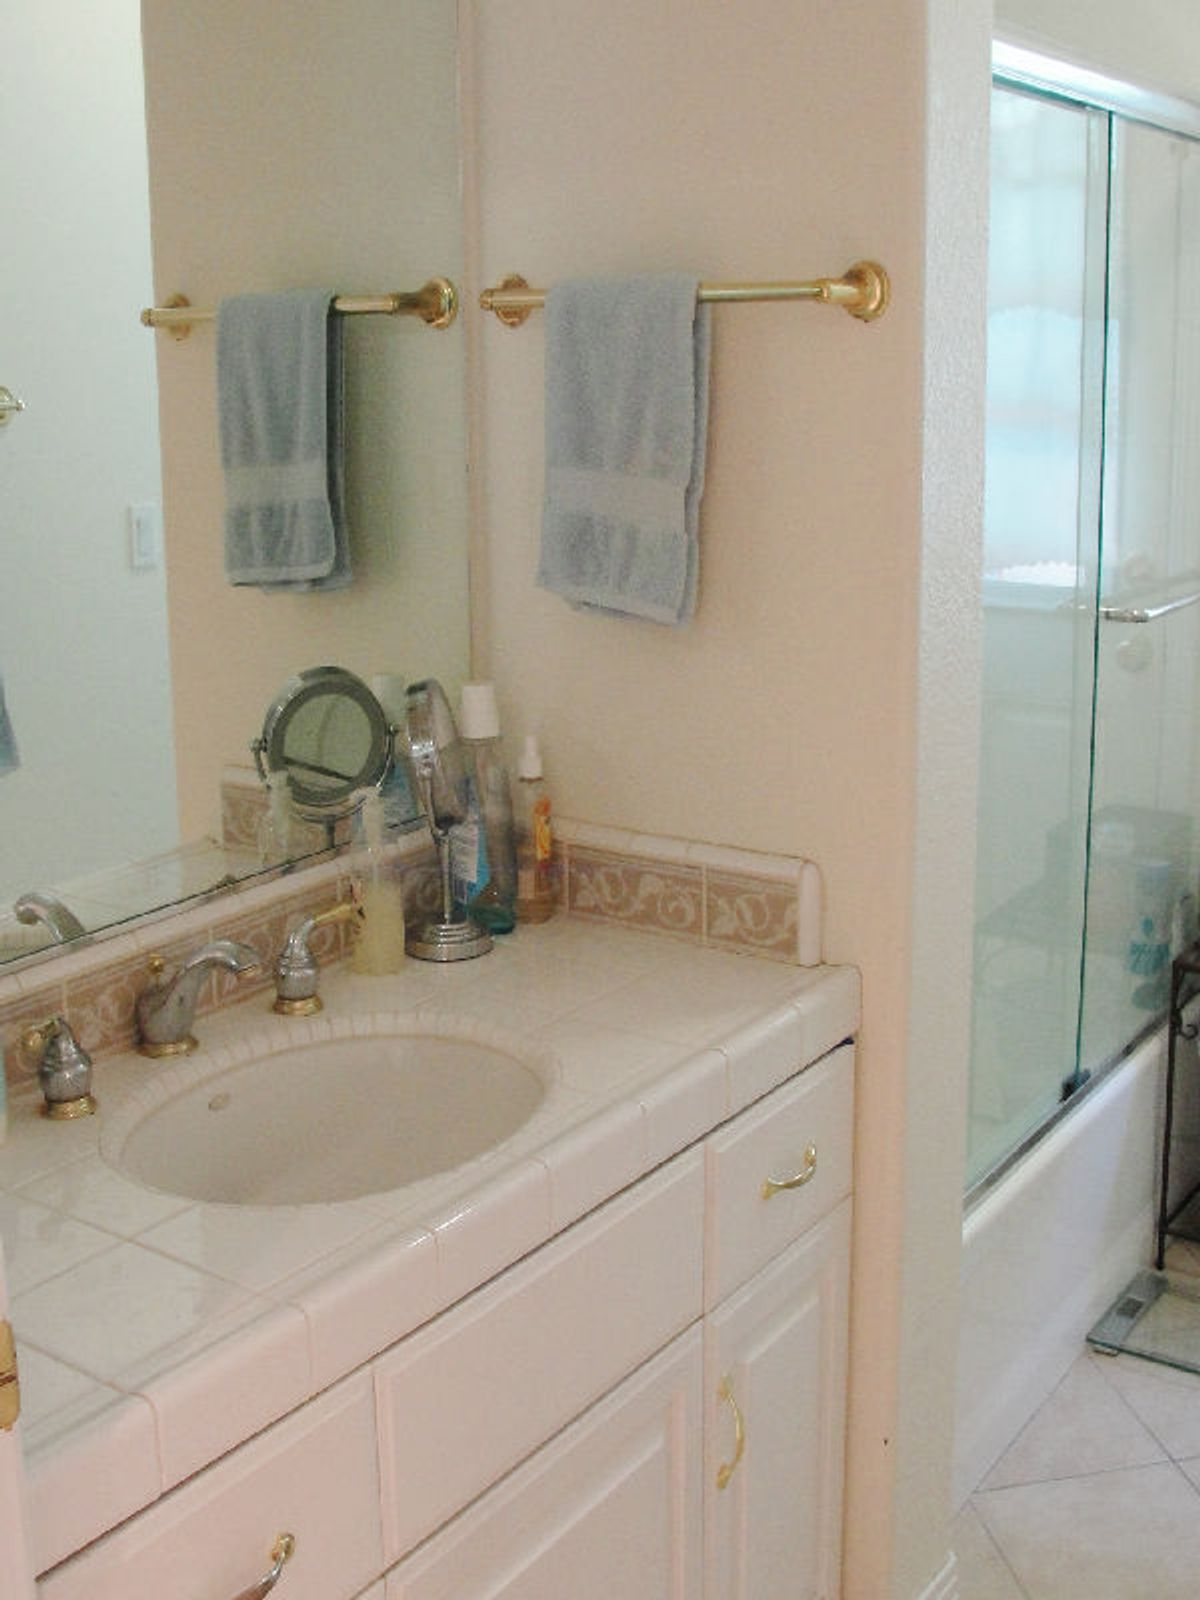 Hall bath with tub/shower and double sinks.